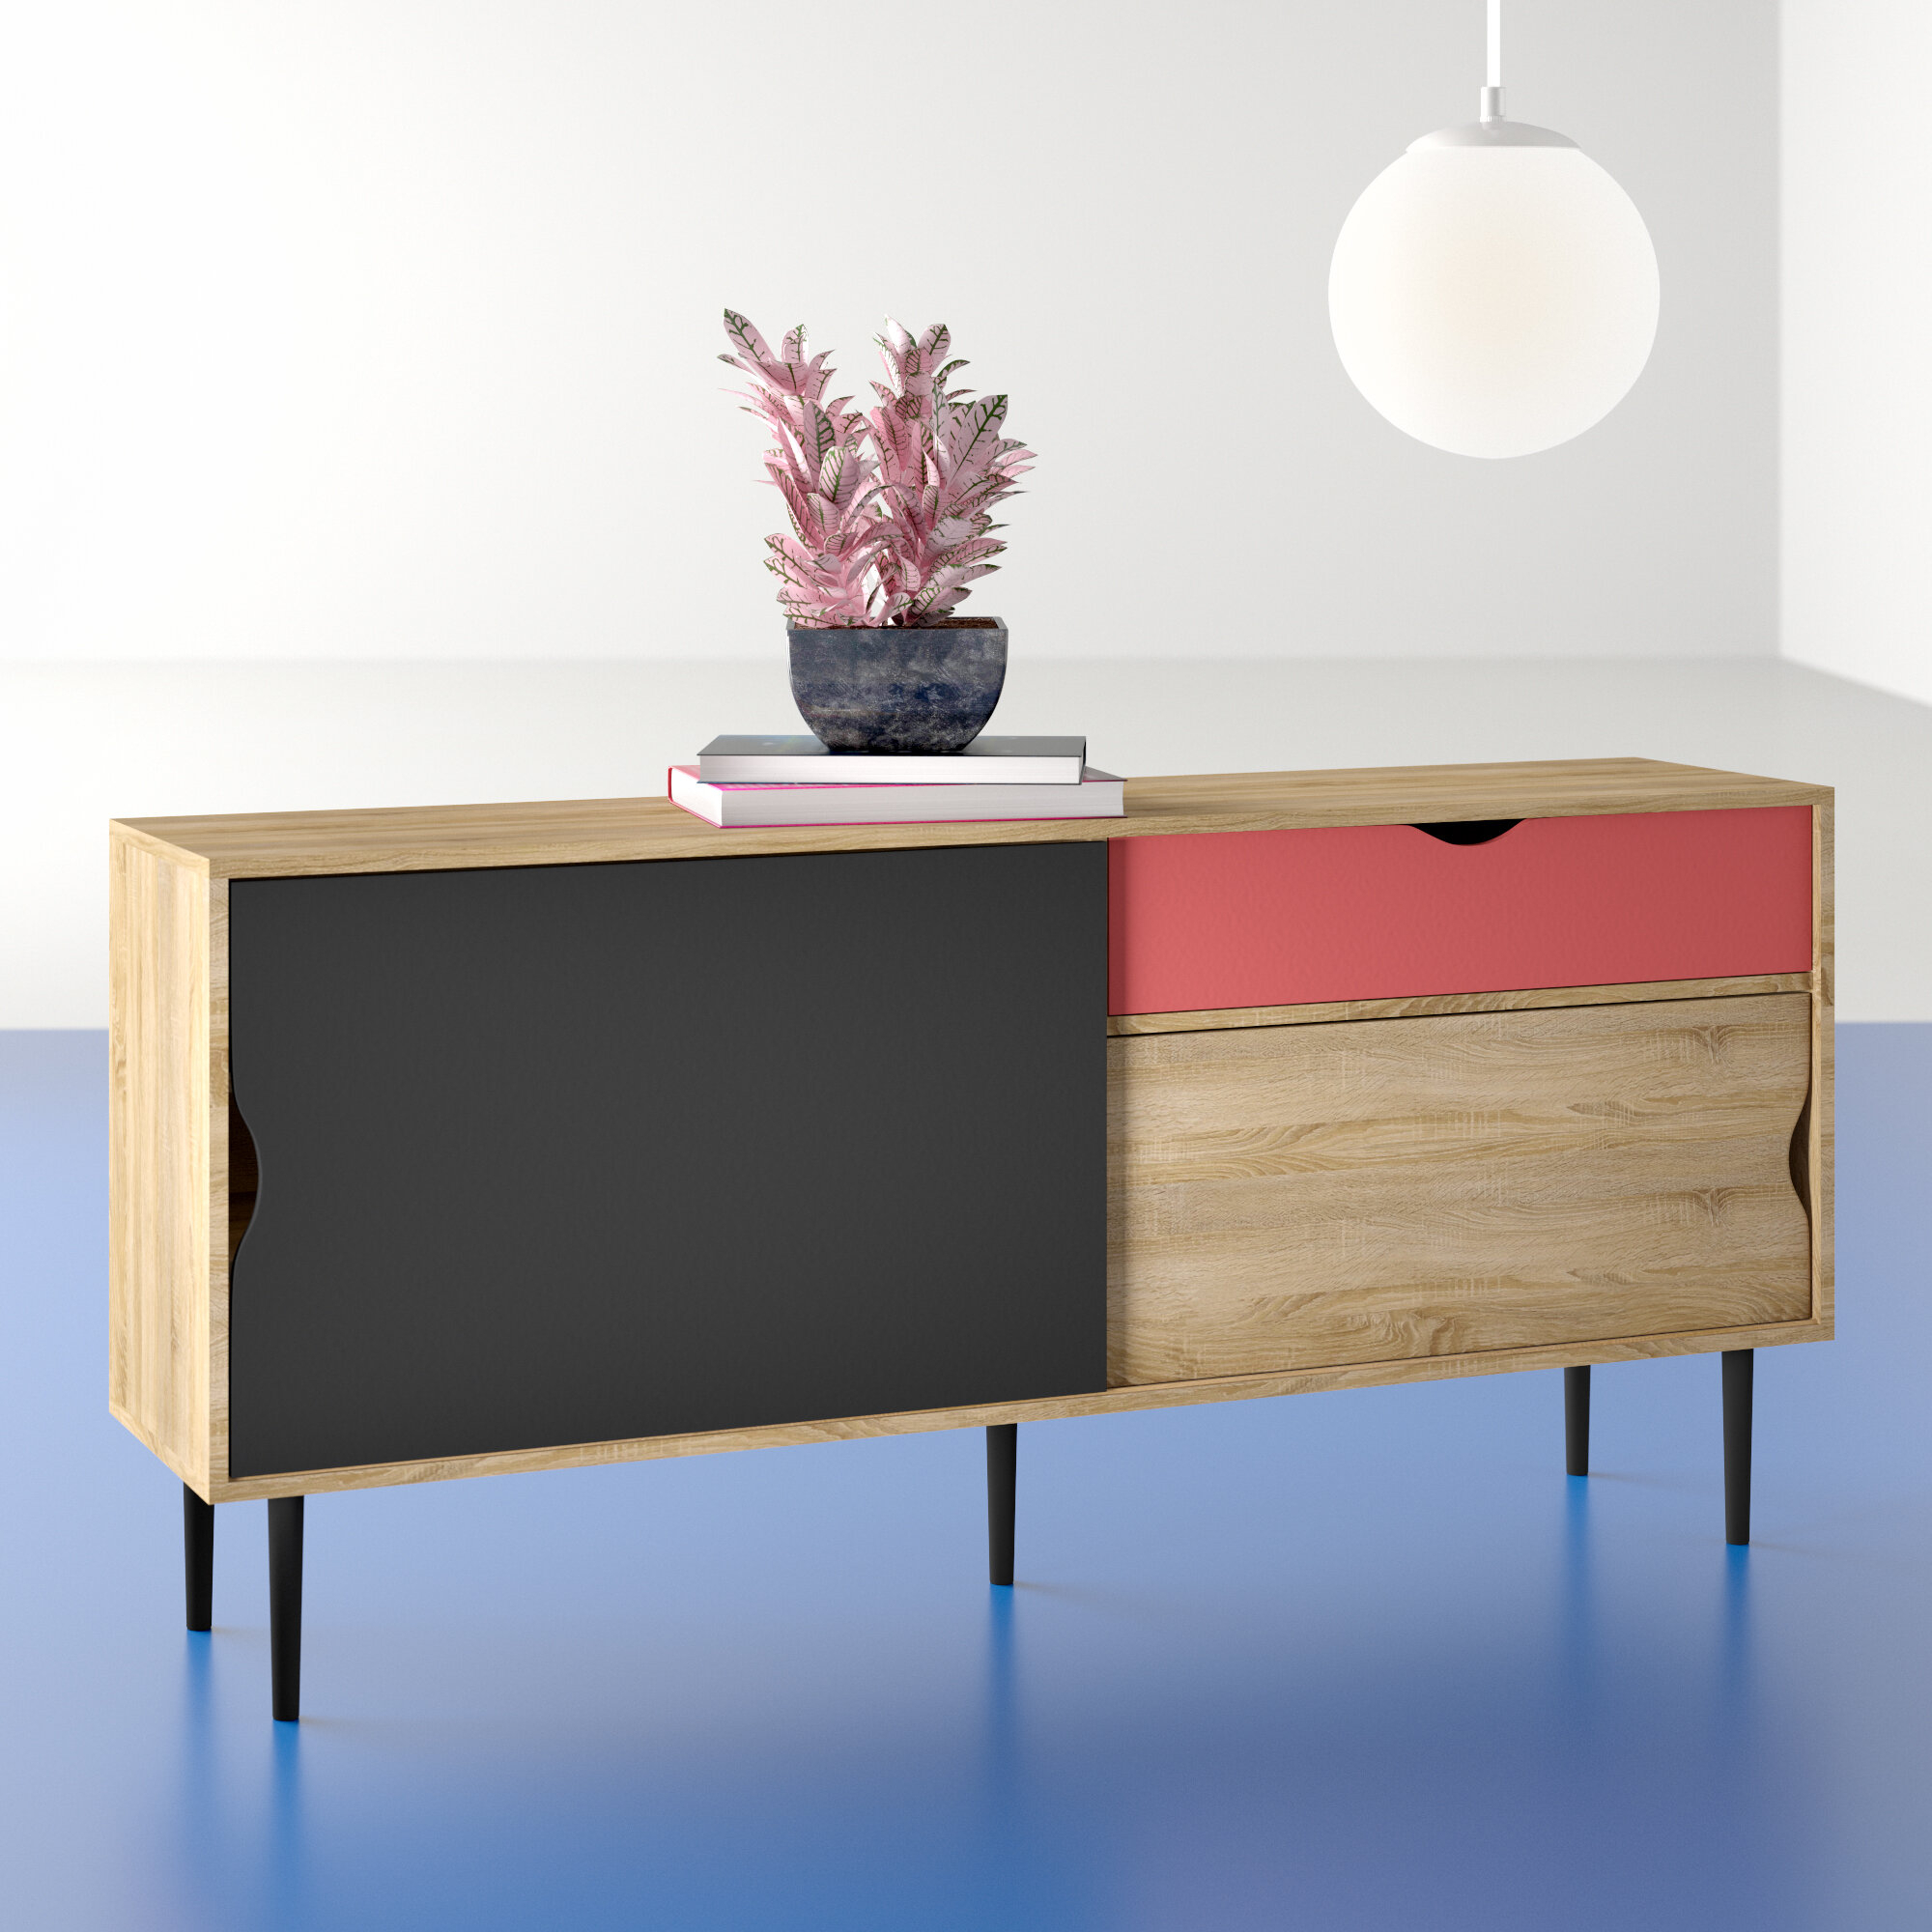 Dovray Buffet Table Intended For Mid Century Retro Modern Oak And Espresso Wood Buffets (Gallery 21 of 30)